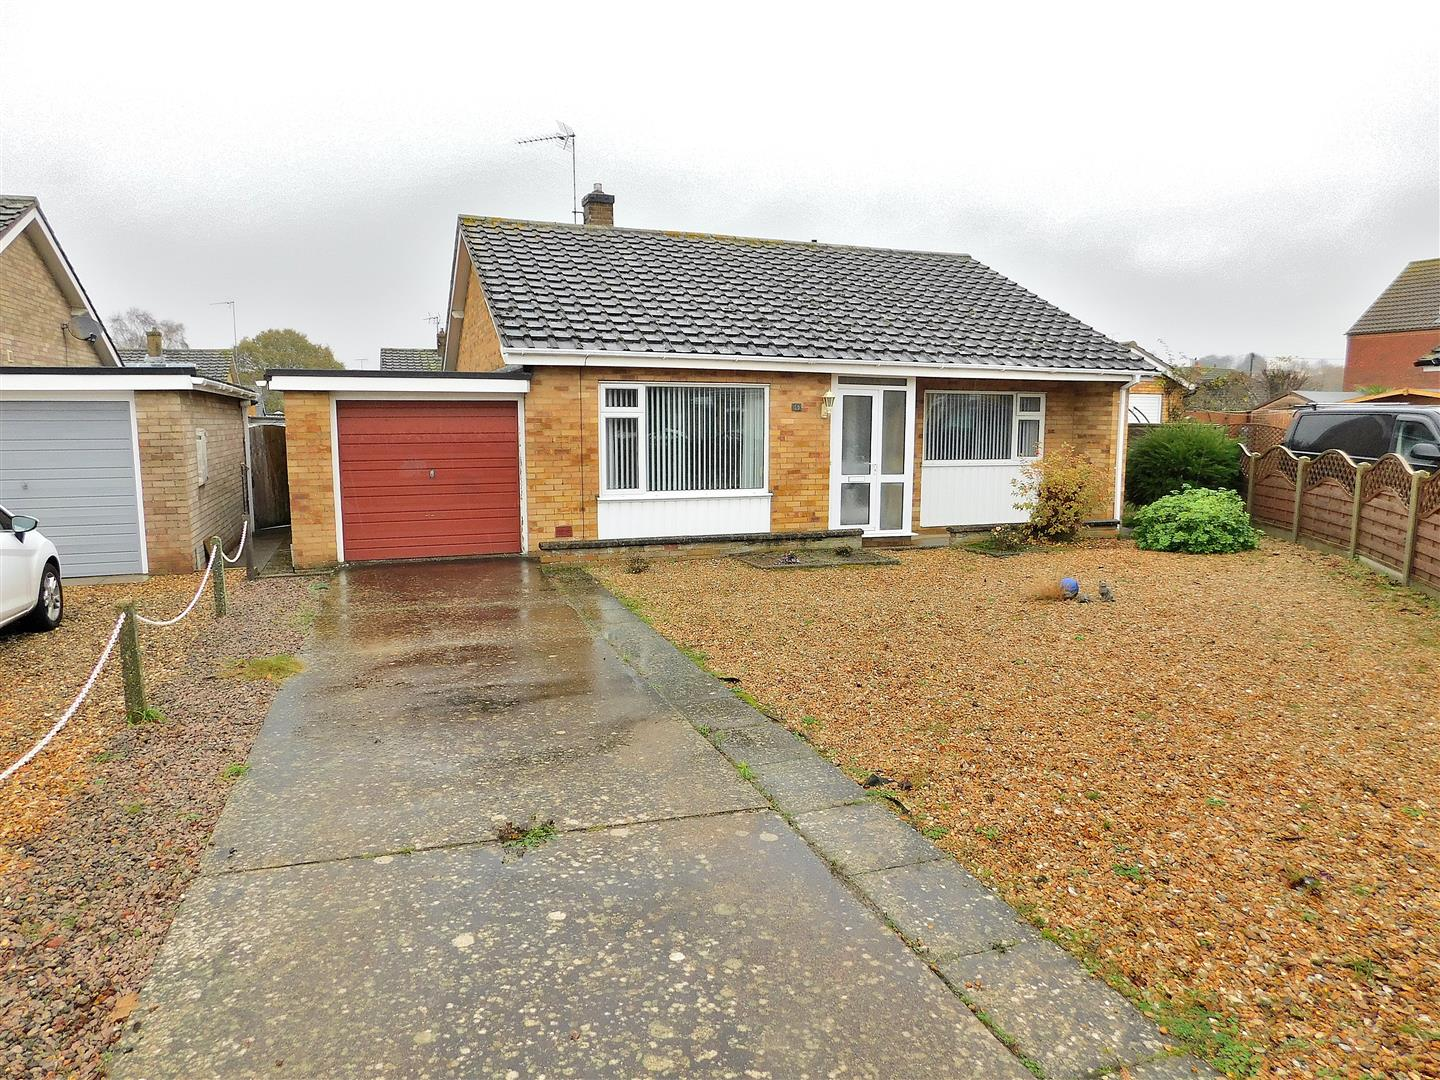 2 bed detached bungalow for sale in King's Lynn, PE31 6QJ, PE31